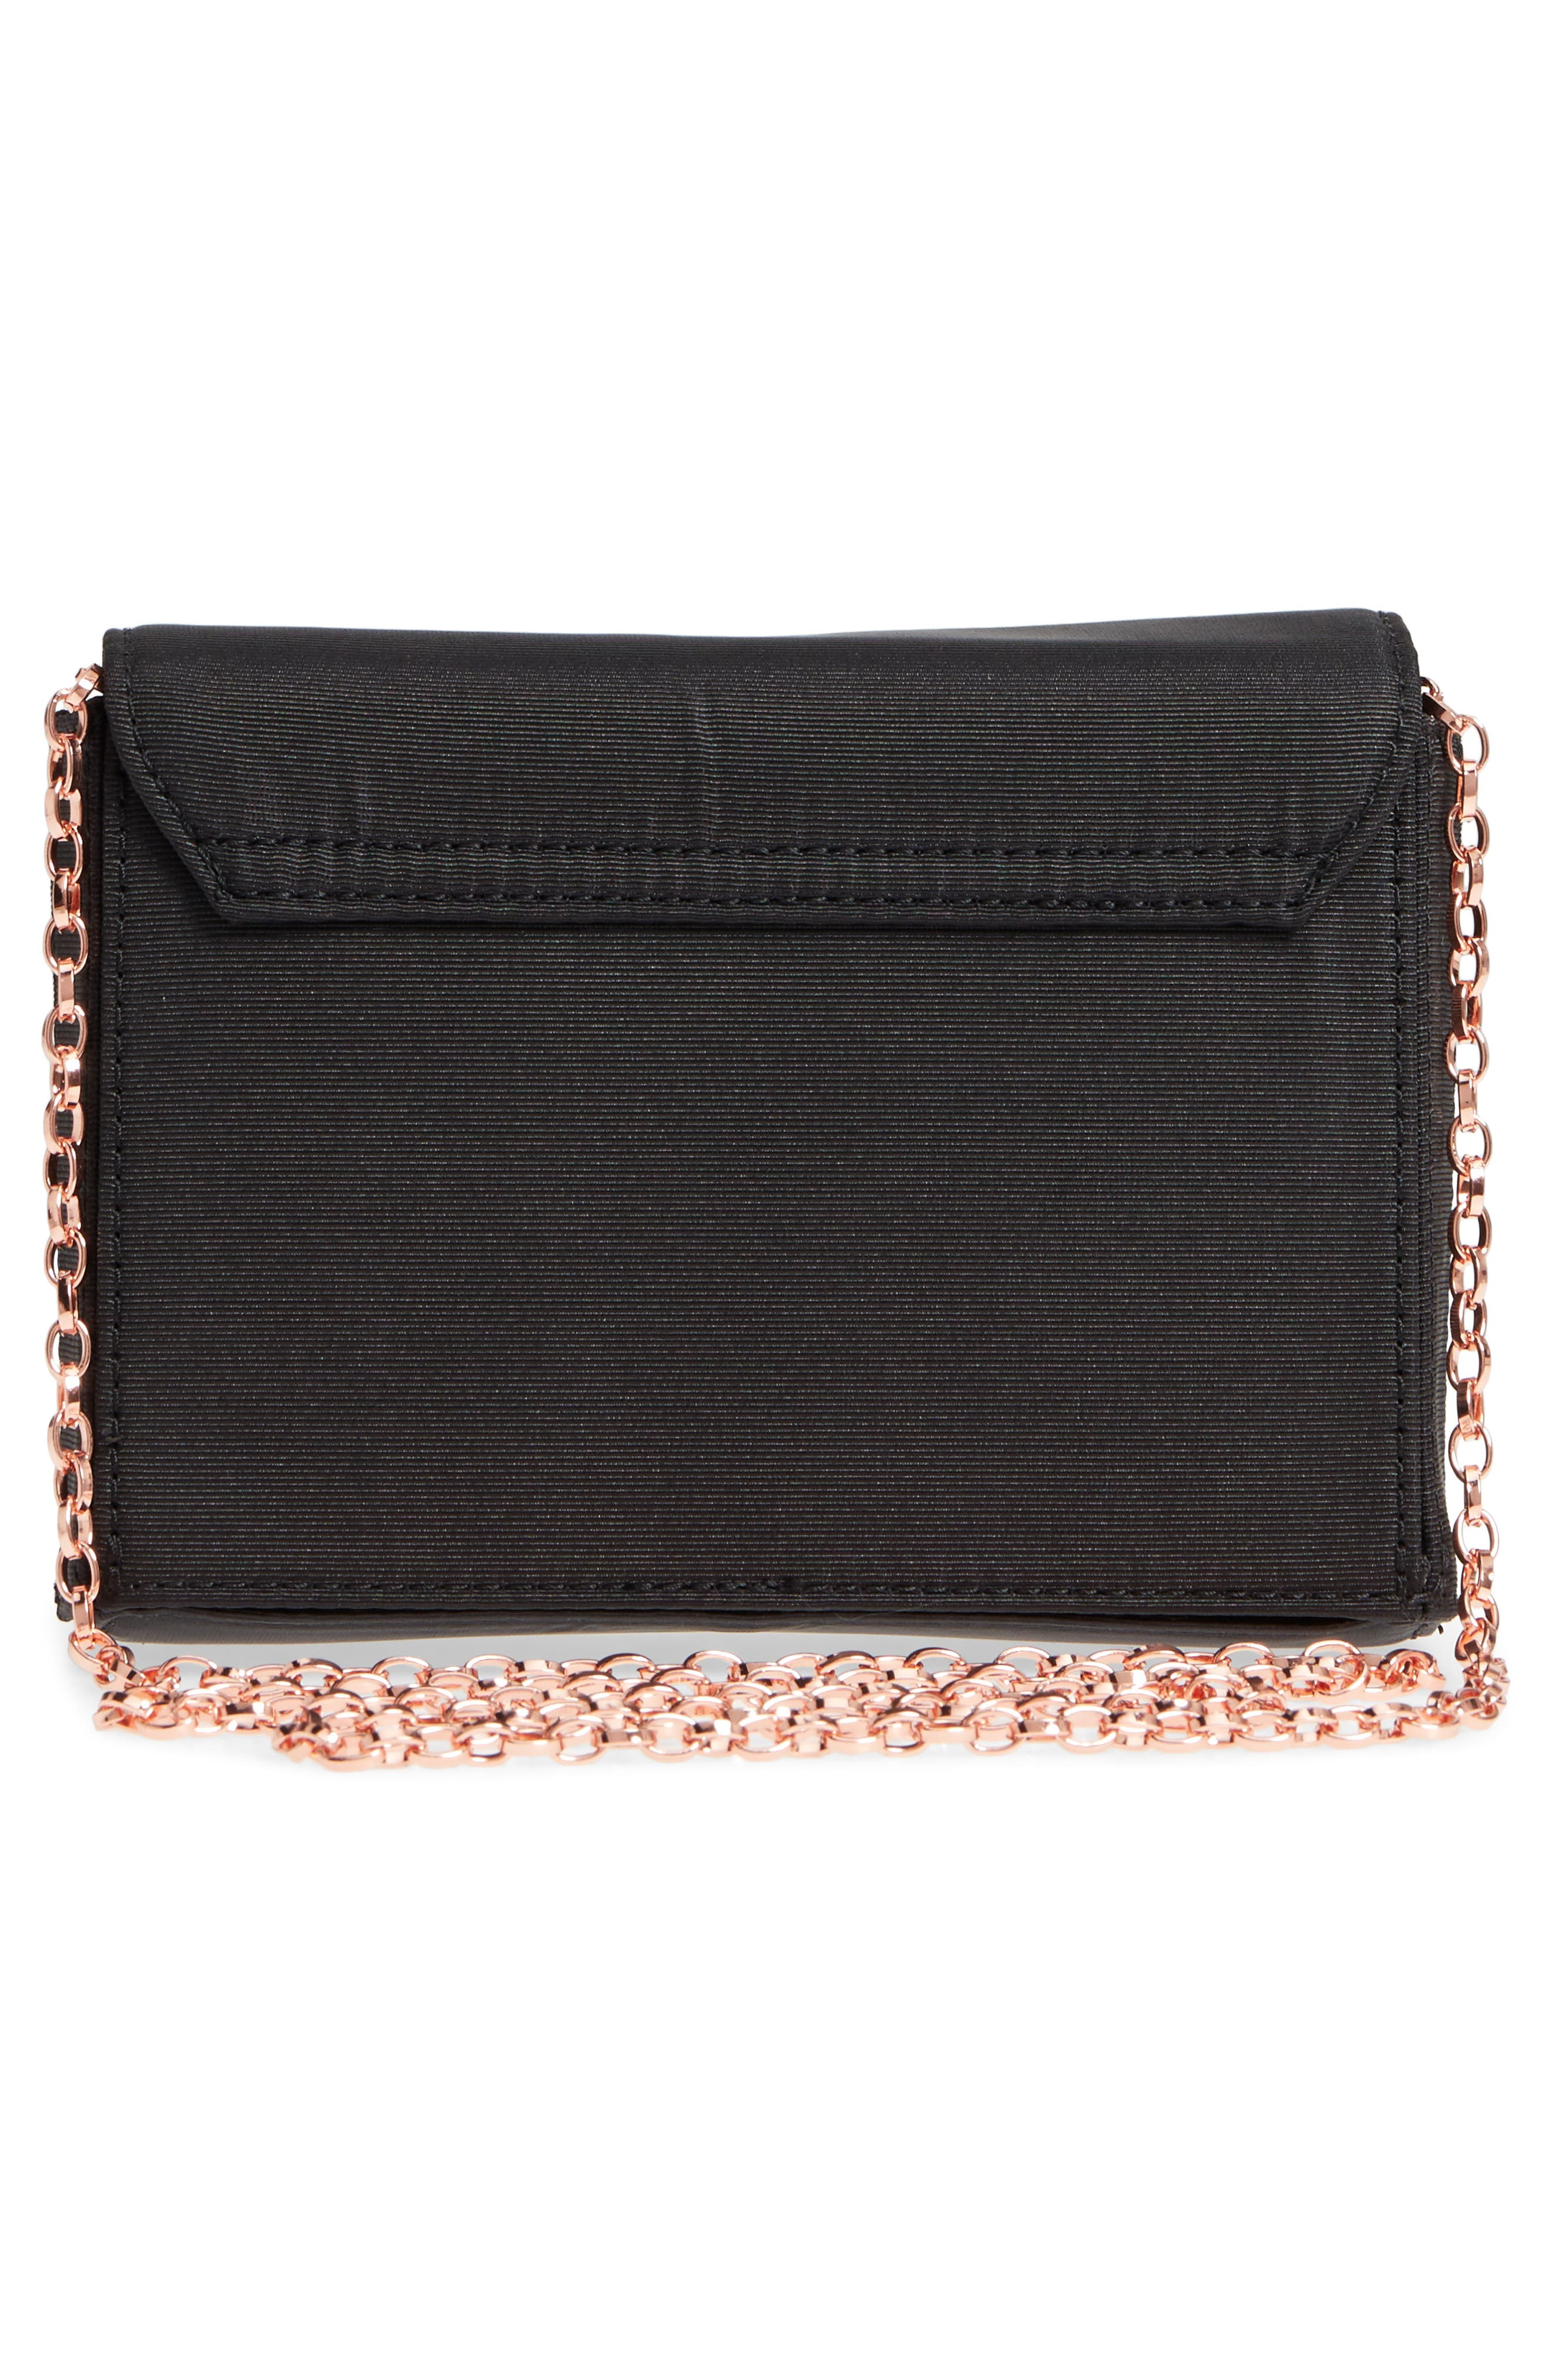 Looped Bow Clutch,                             Alternate thumbnail 5, color,